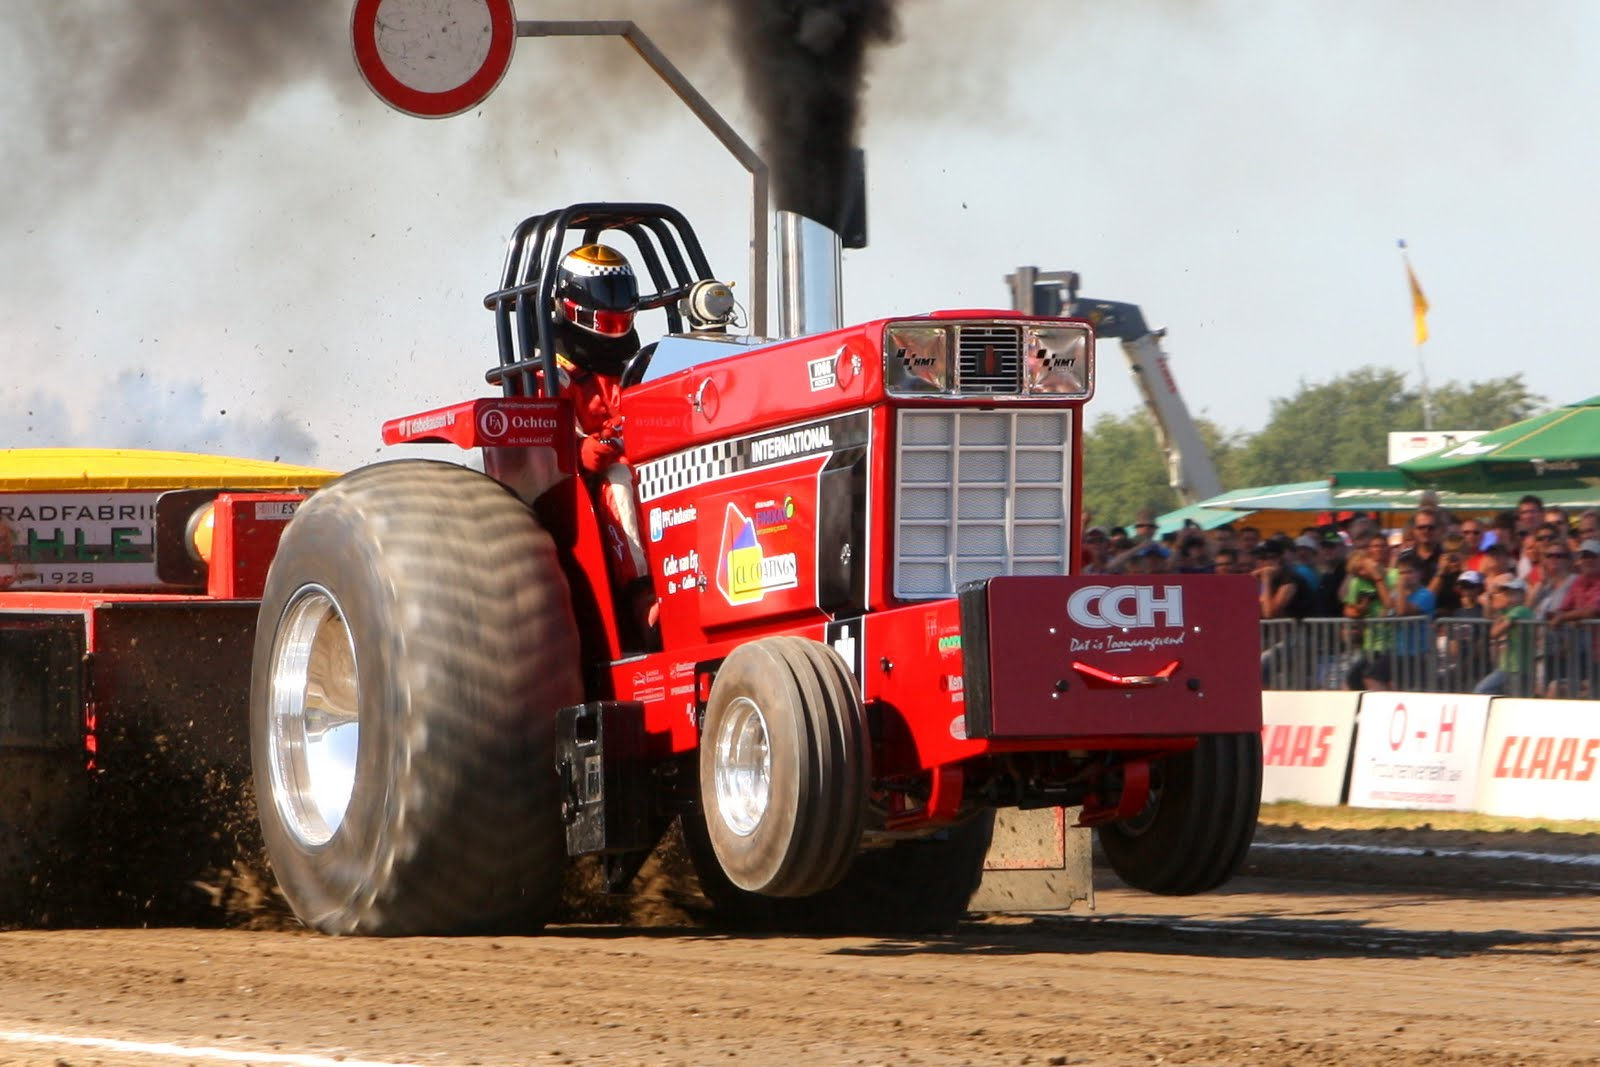 Super Pro Stock Pulling Tractor : Tractor pulling news pullingworld euro cup